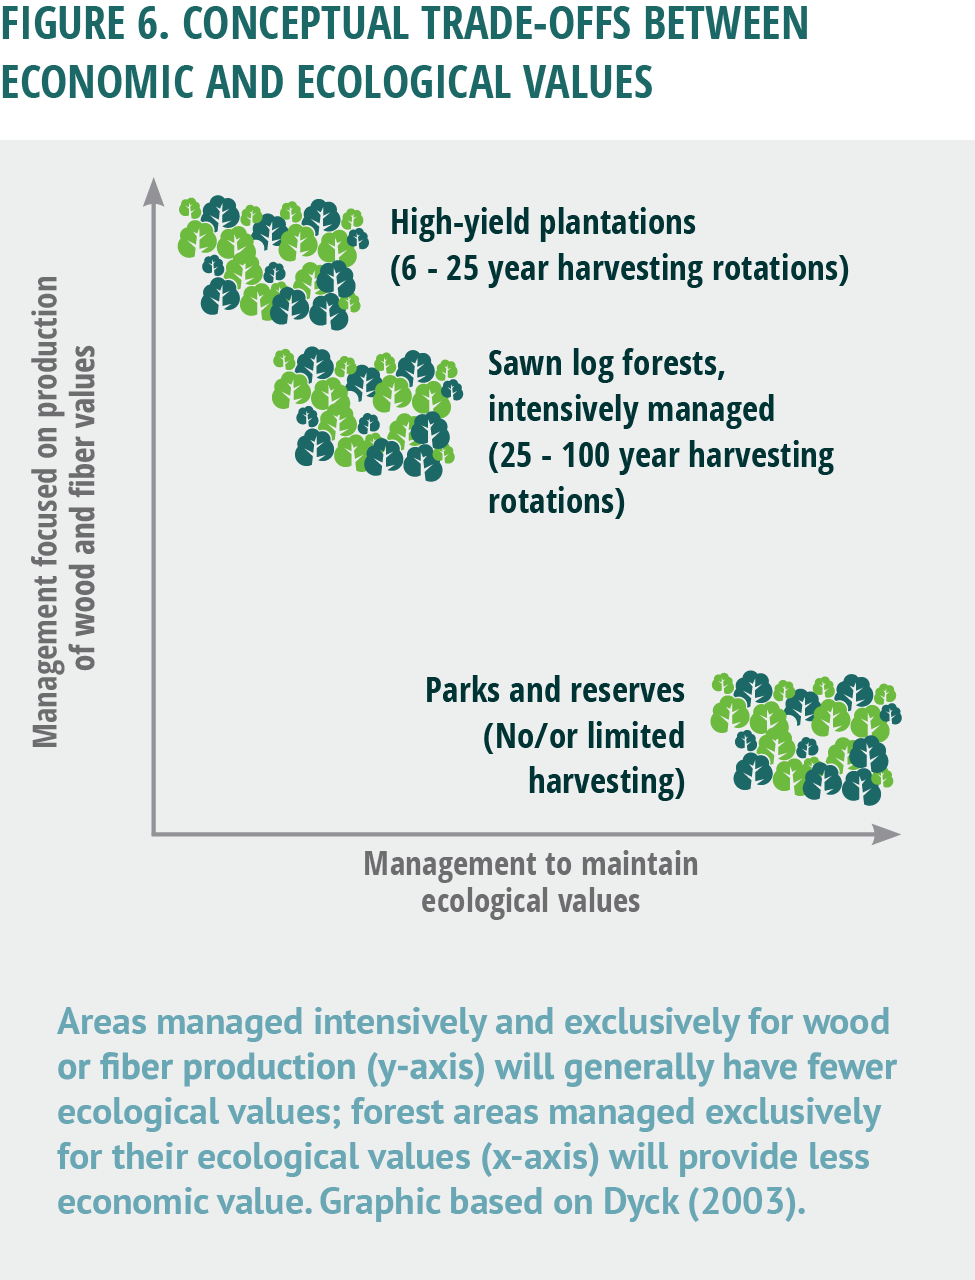 Have Forests Been Sustainably Managed